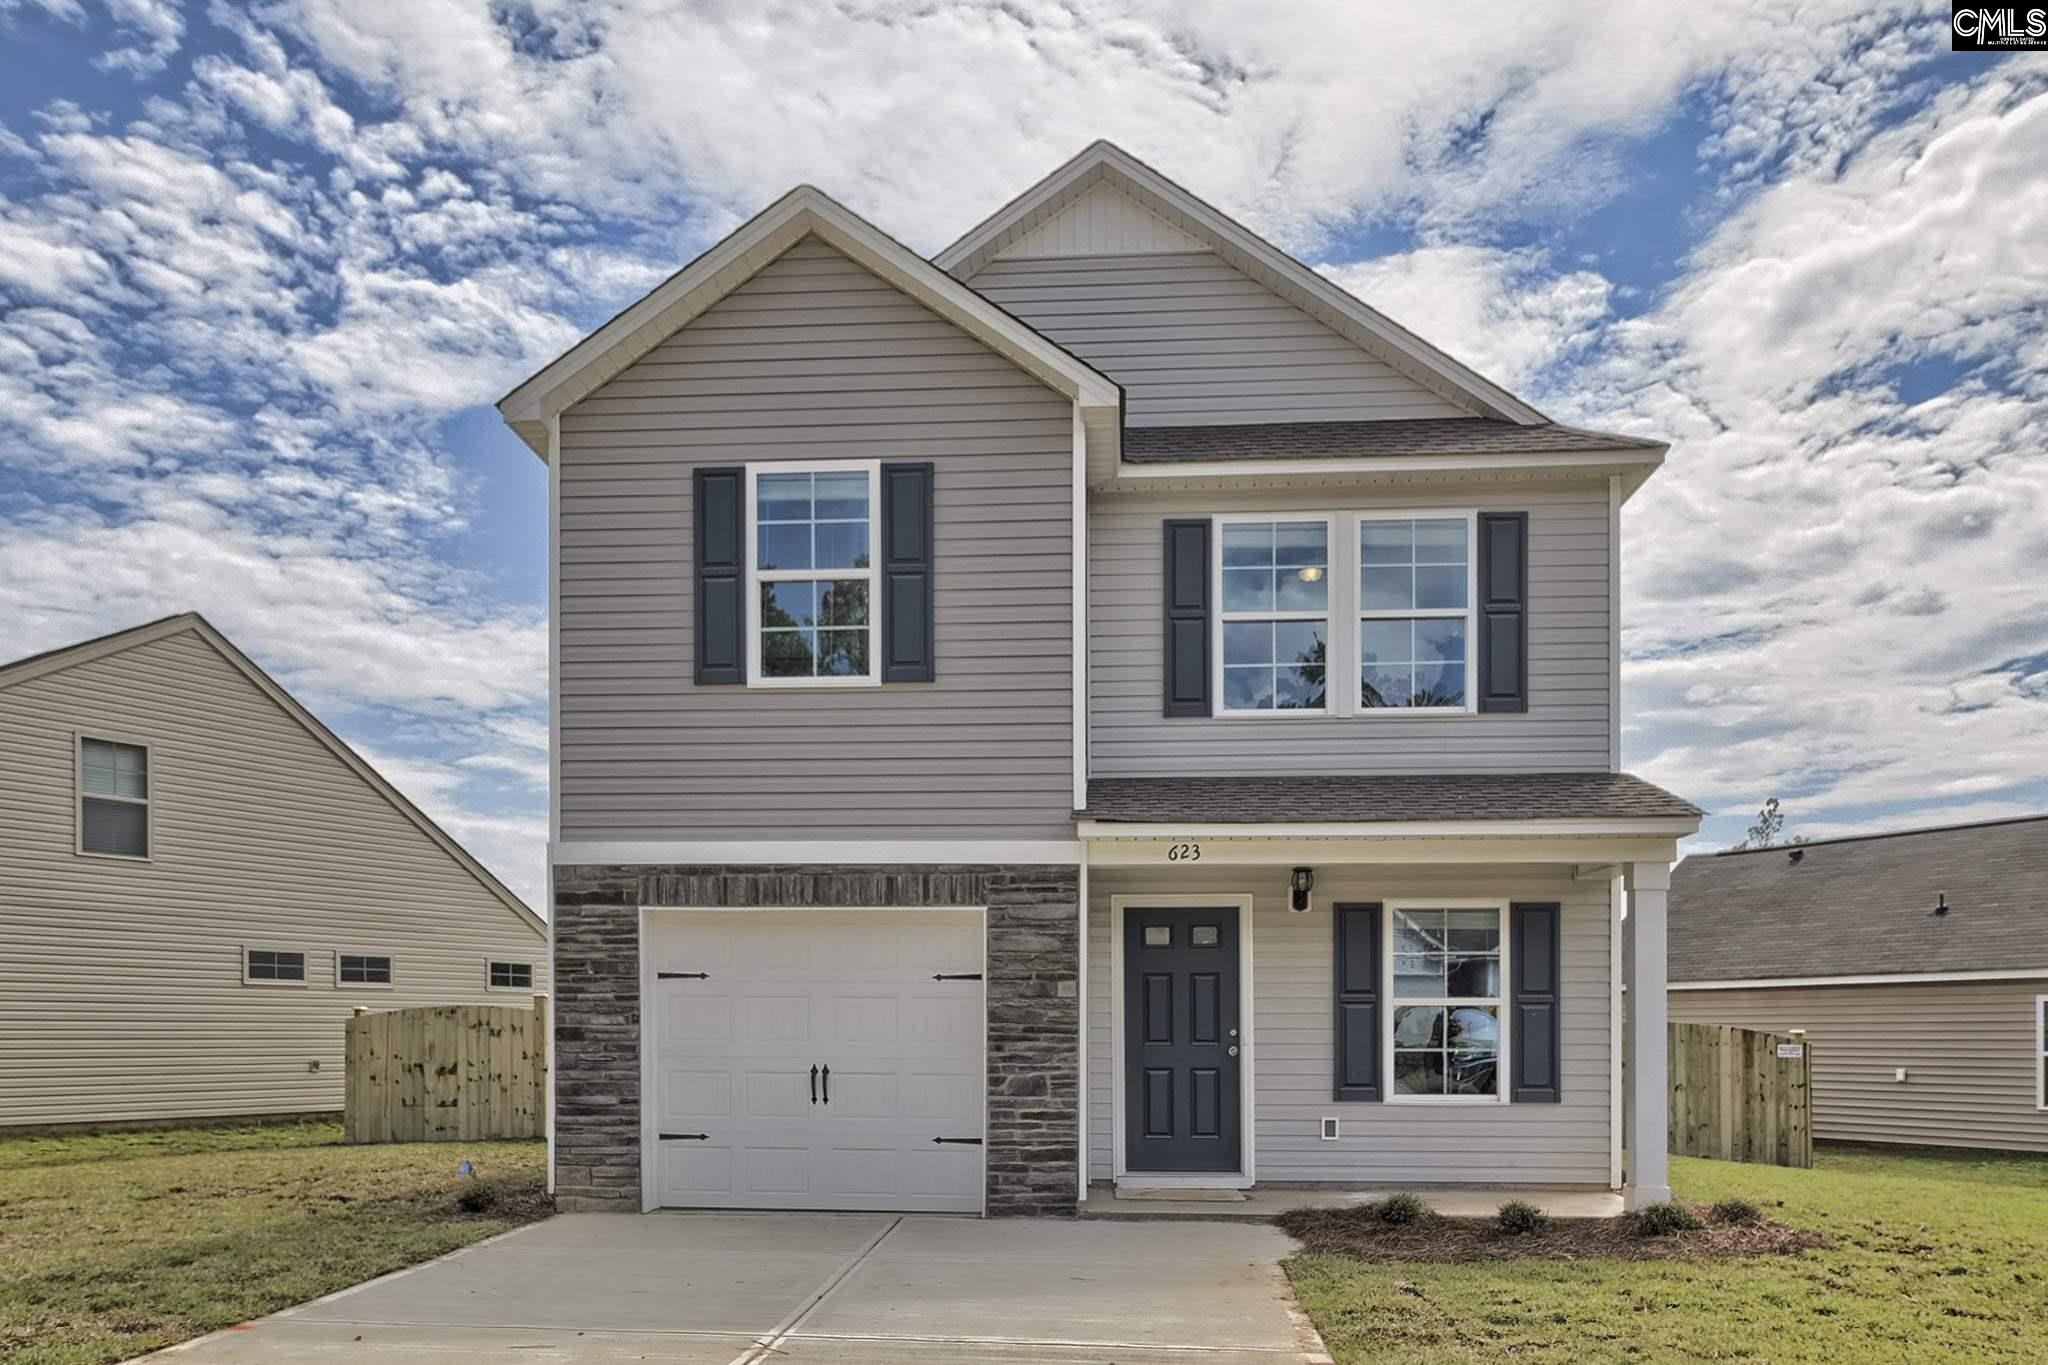 539 Lawndale Gaston, SC 29053